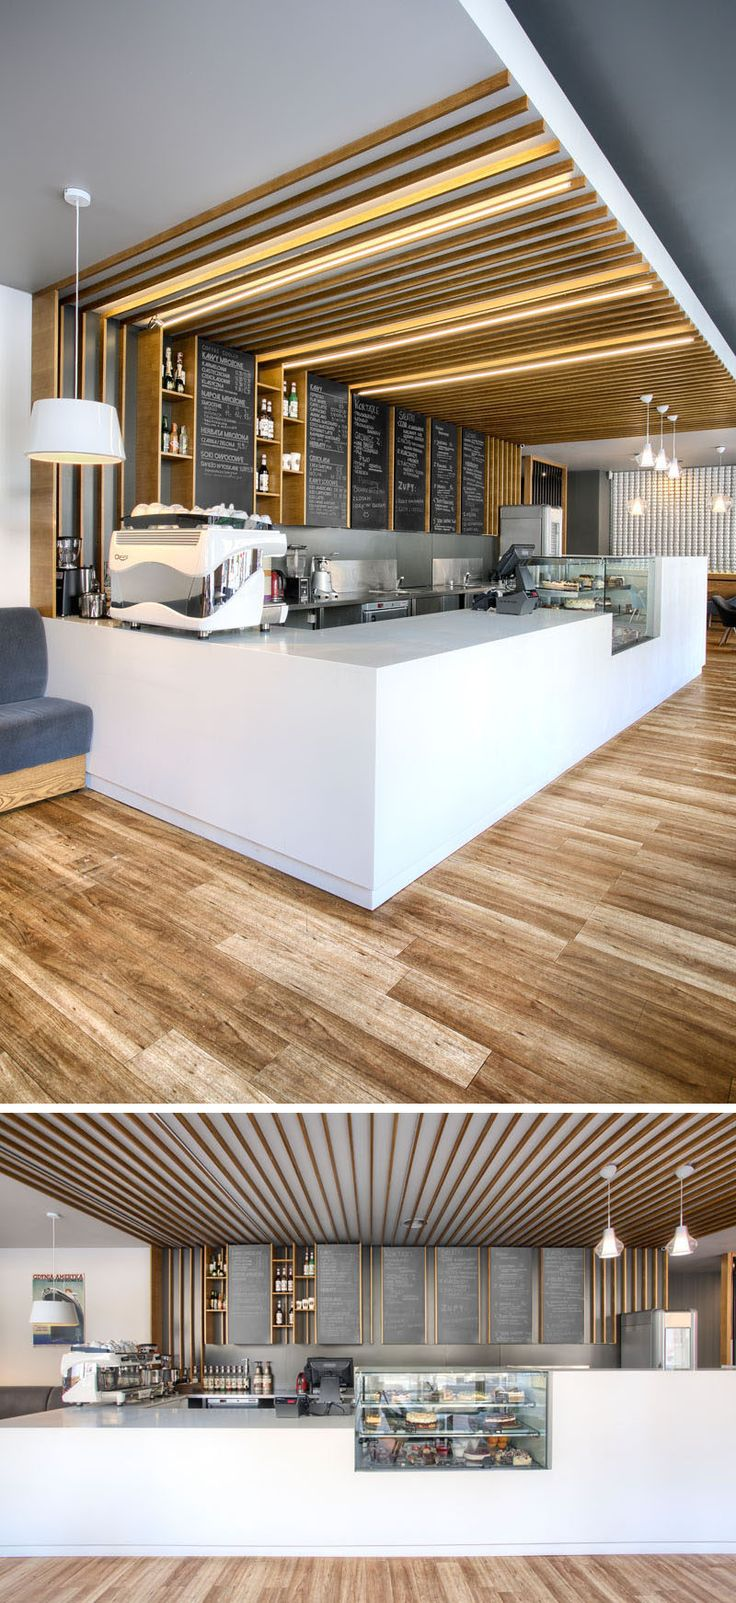 best 20+ wood cafe ideas on pinterest | bakery shop interior, cafe